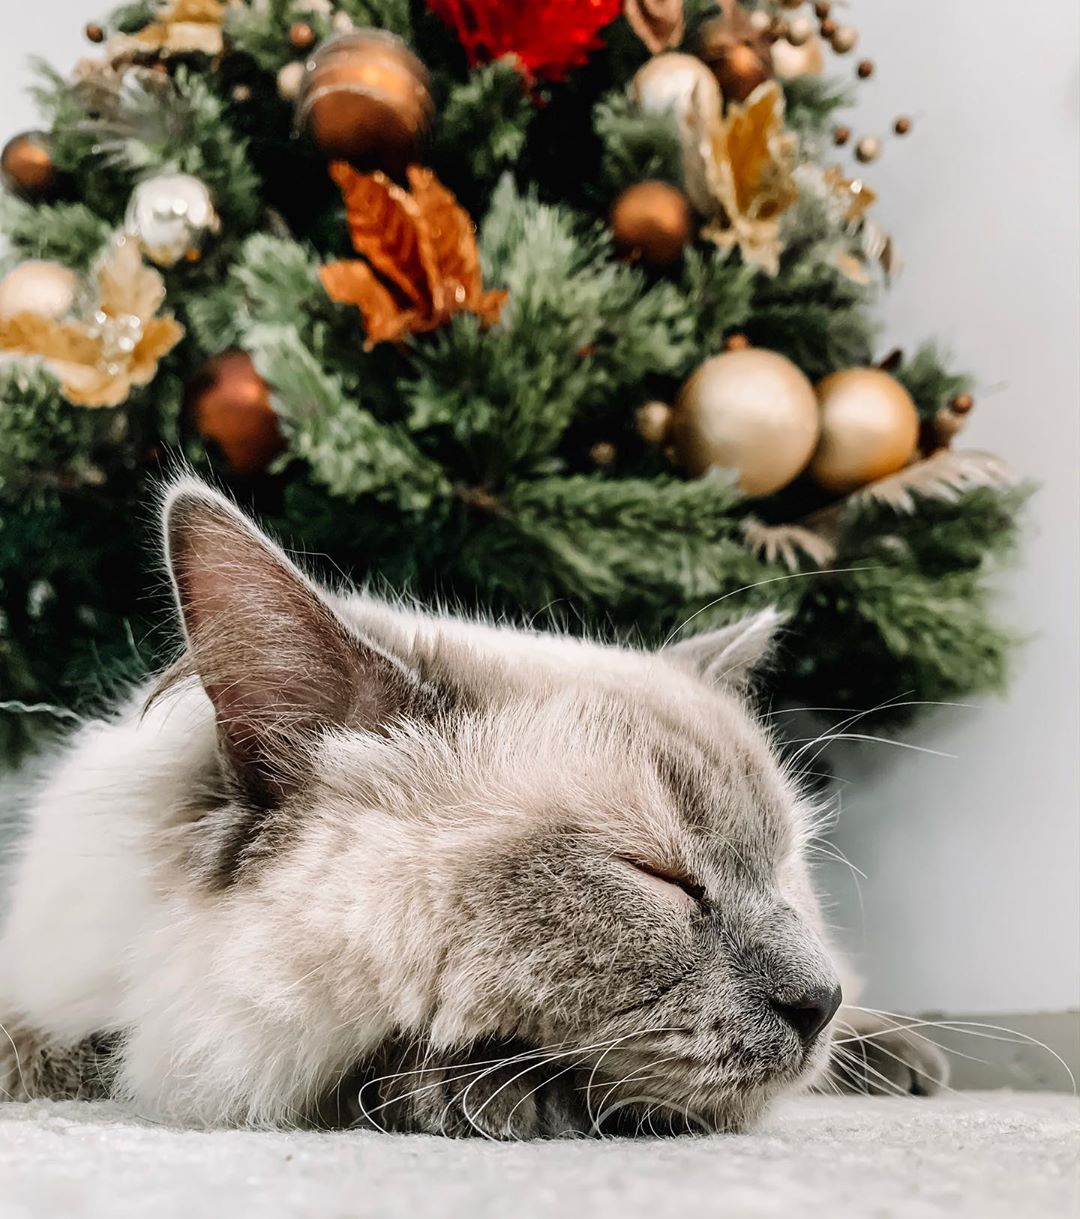 Cat enjoys Christmas holiday vibes